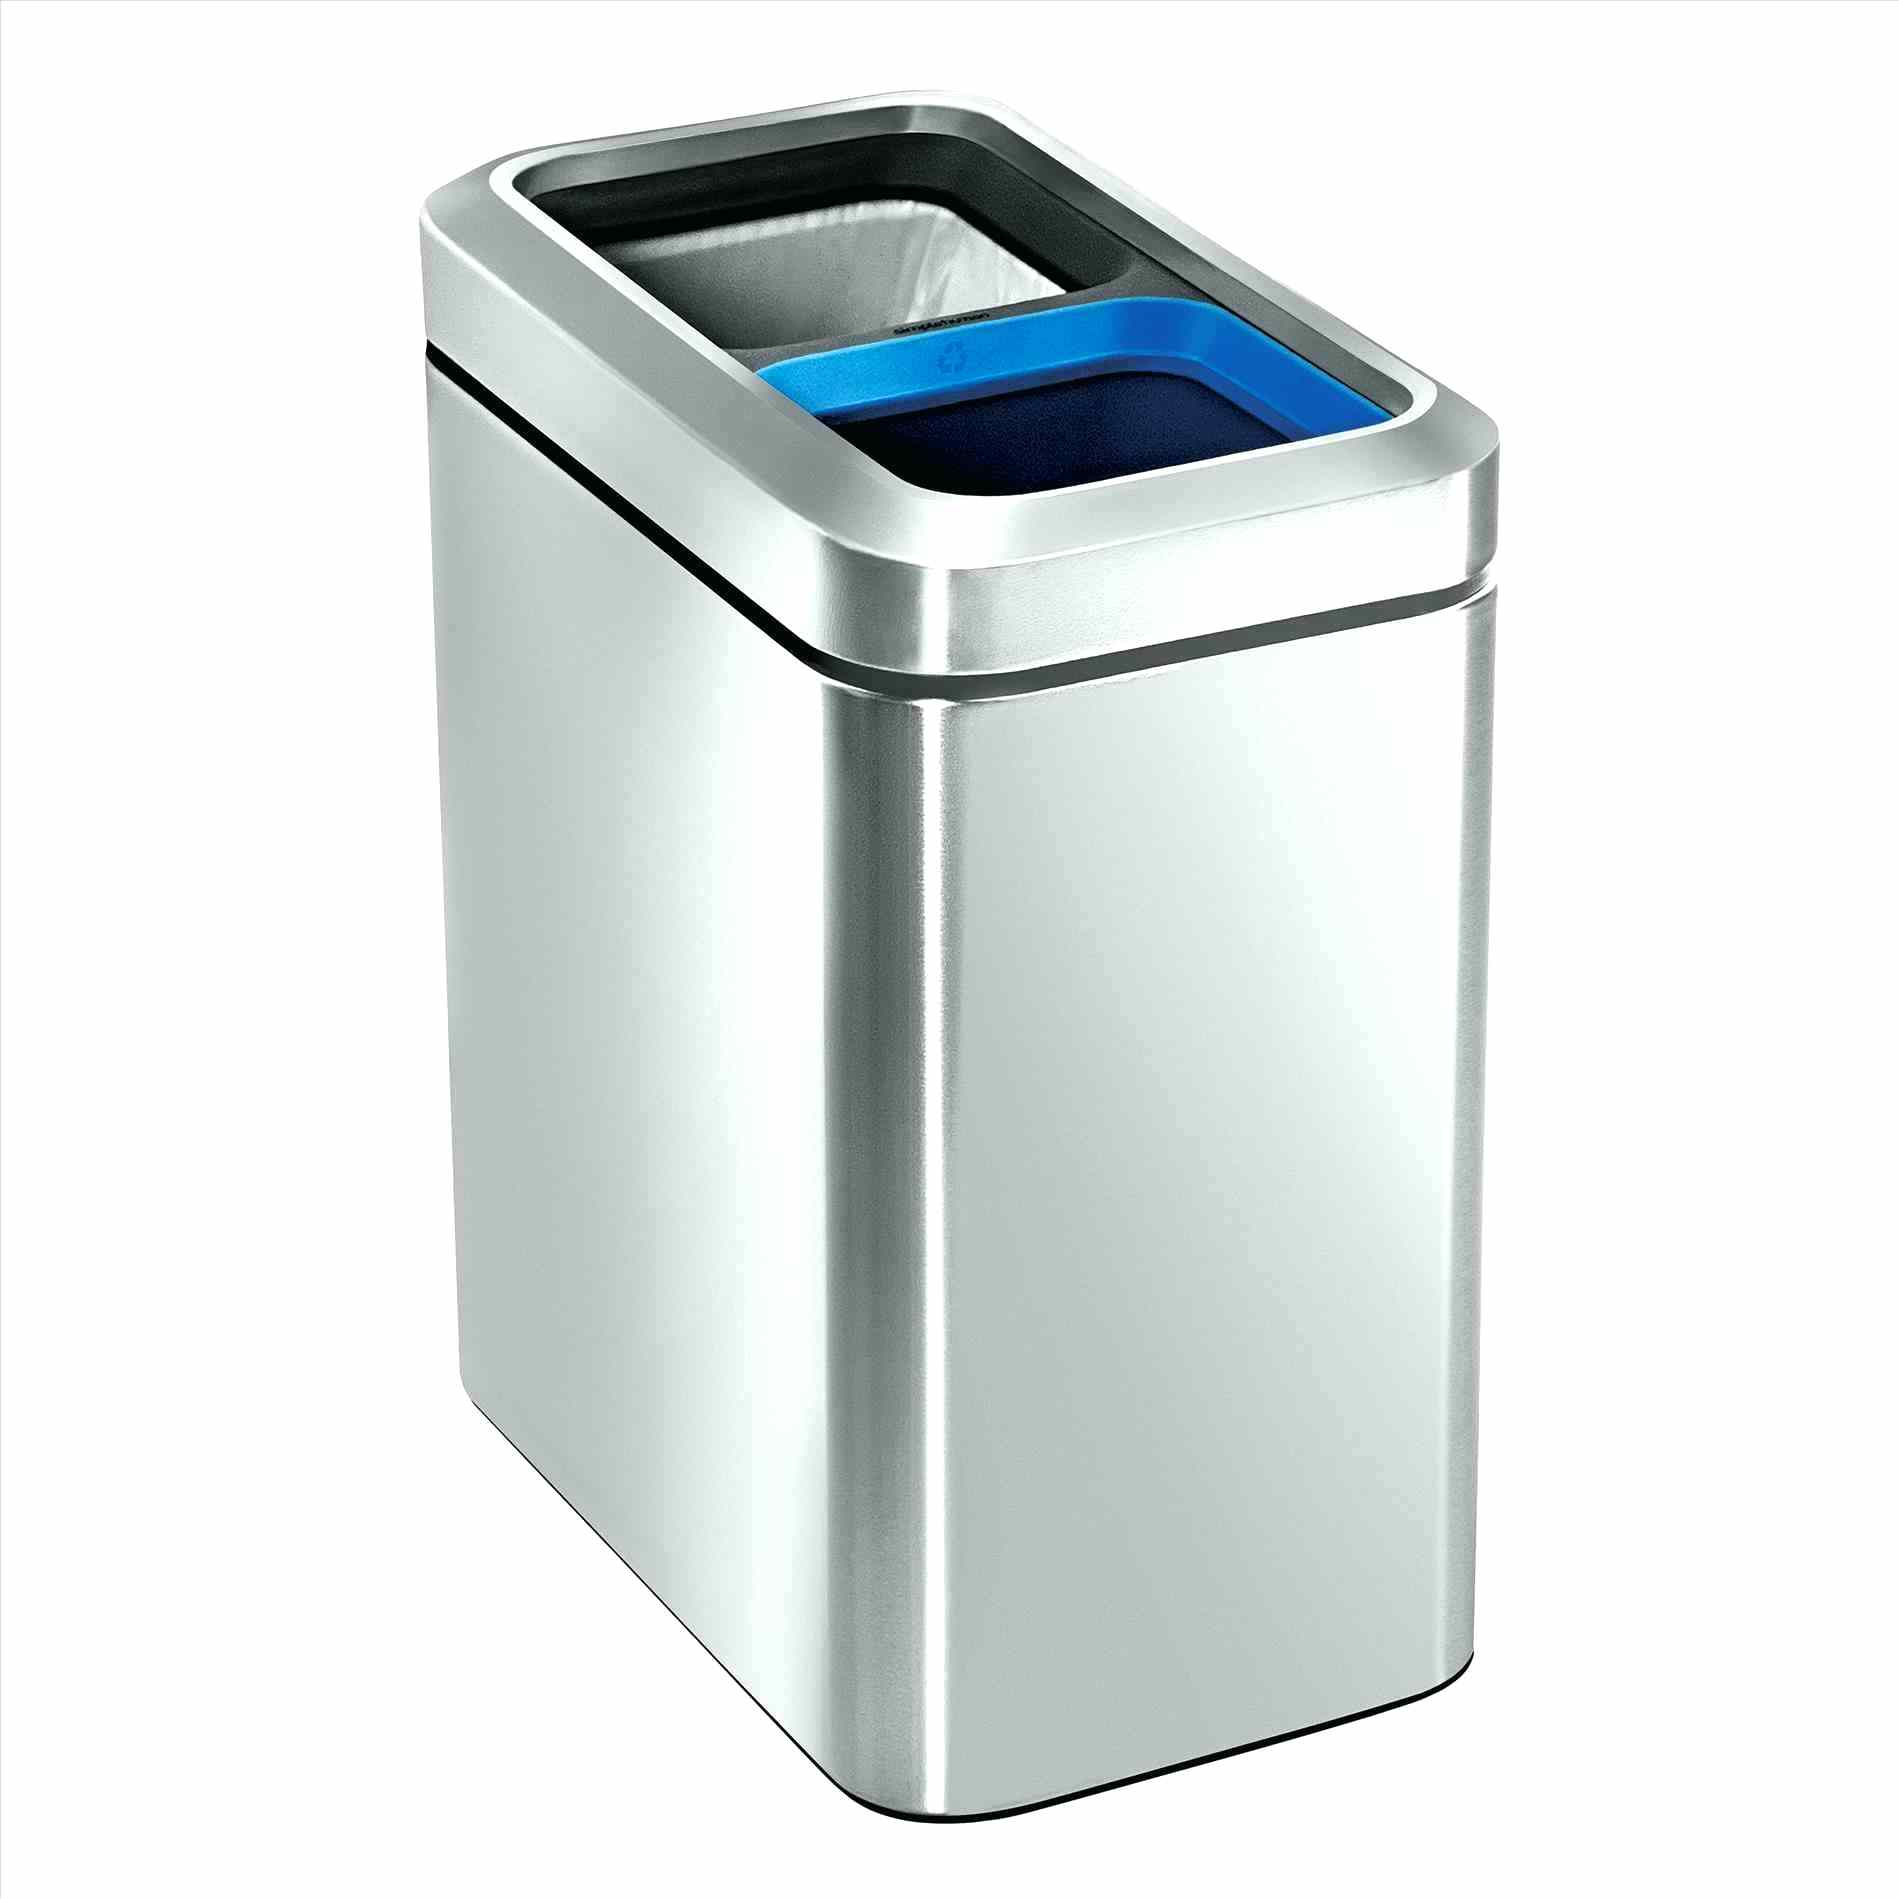 1899x1899 Stuffing Mini Trash Cans For Party Favors Mini Metal Trash Cans